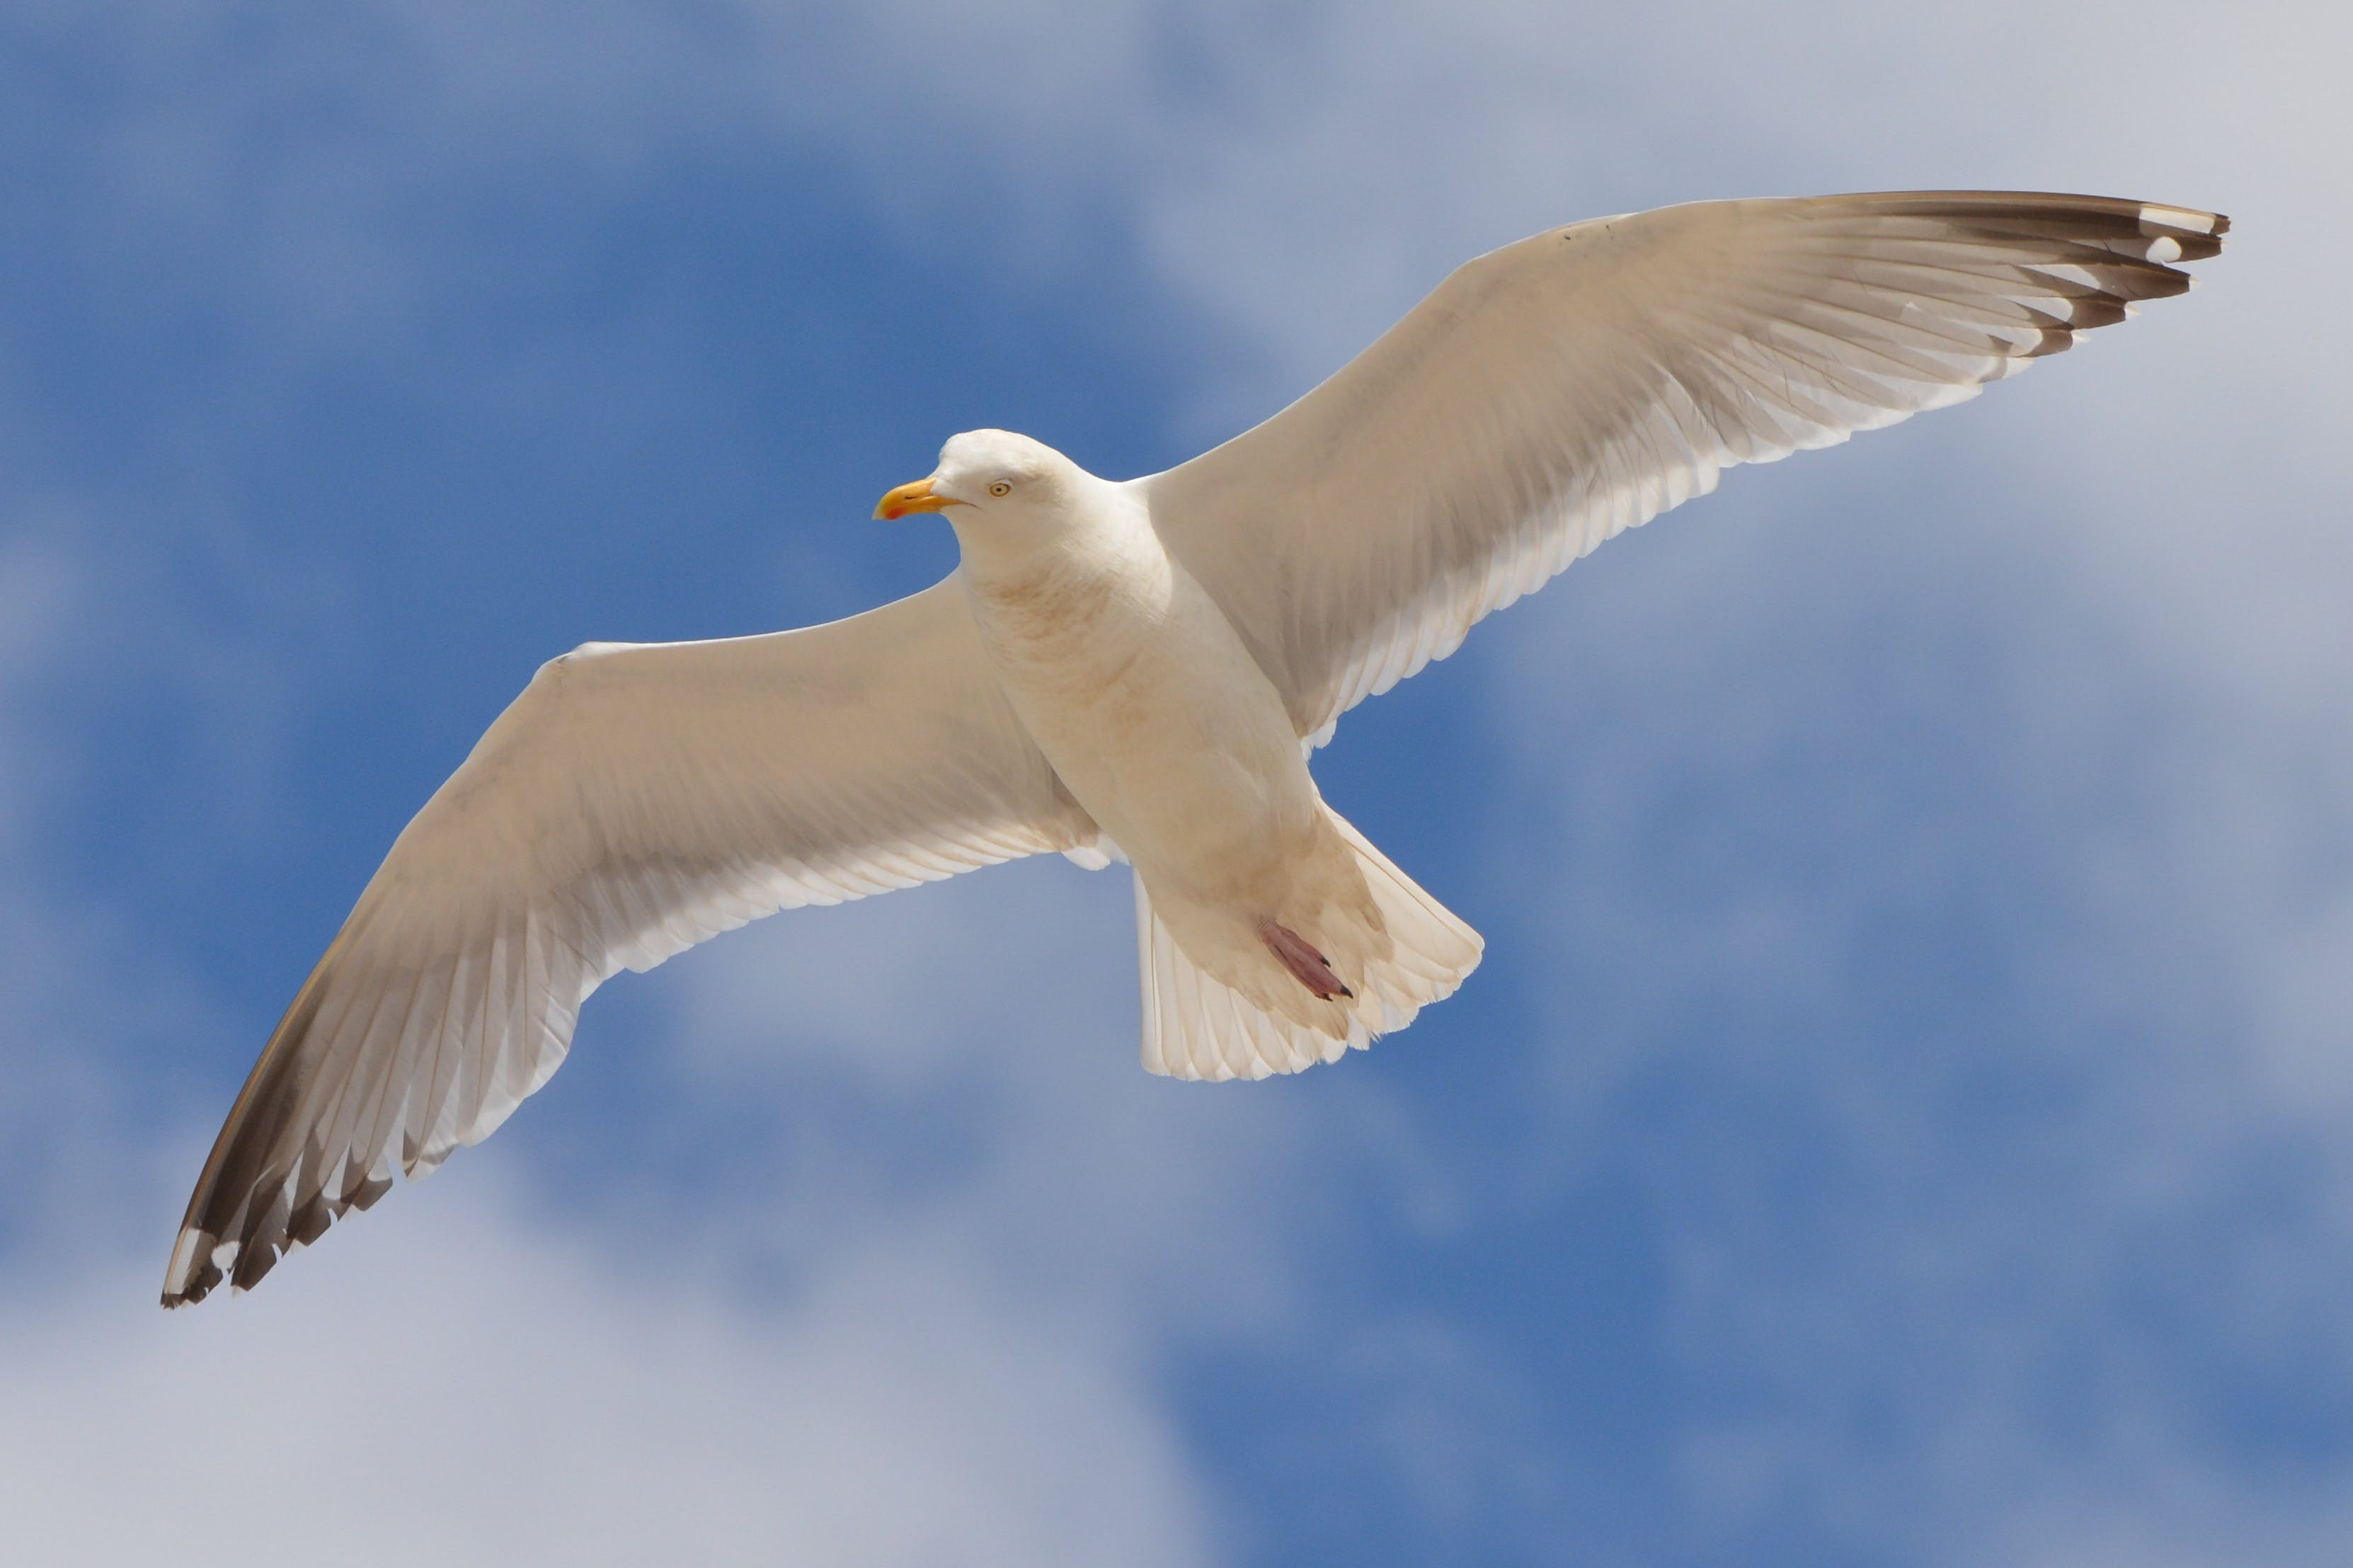 White Bird Flying Under the Blue and White Sky during Daytime